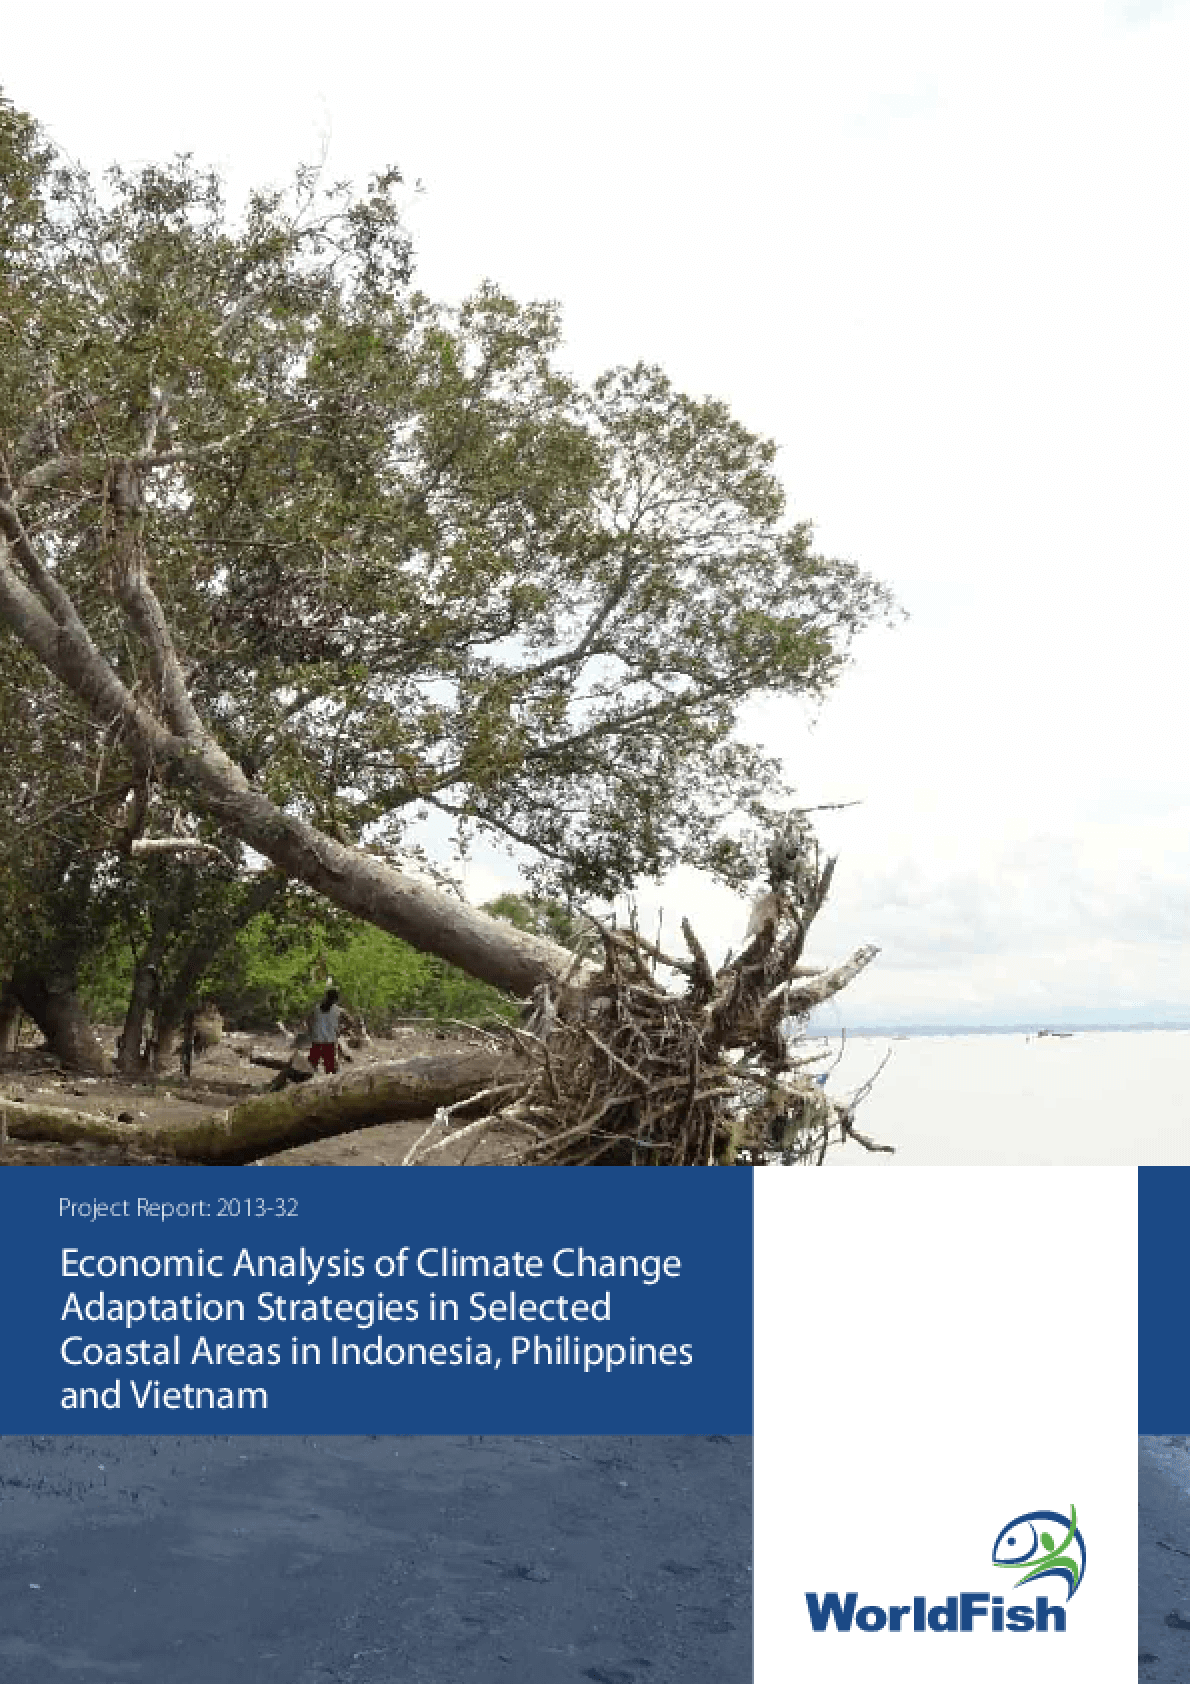 Economic Analysis of Climate Change Adaptation Strategies in Selected Coastal Areas in Indonesia, Philippines and Vietnam